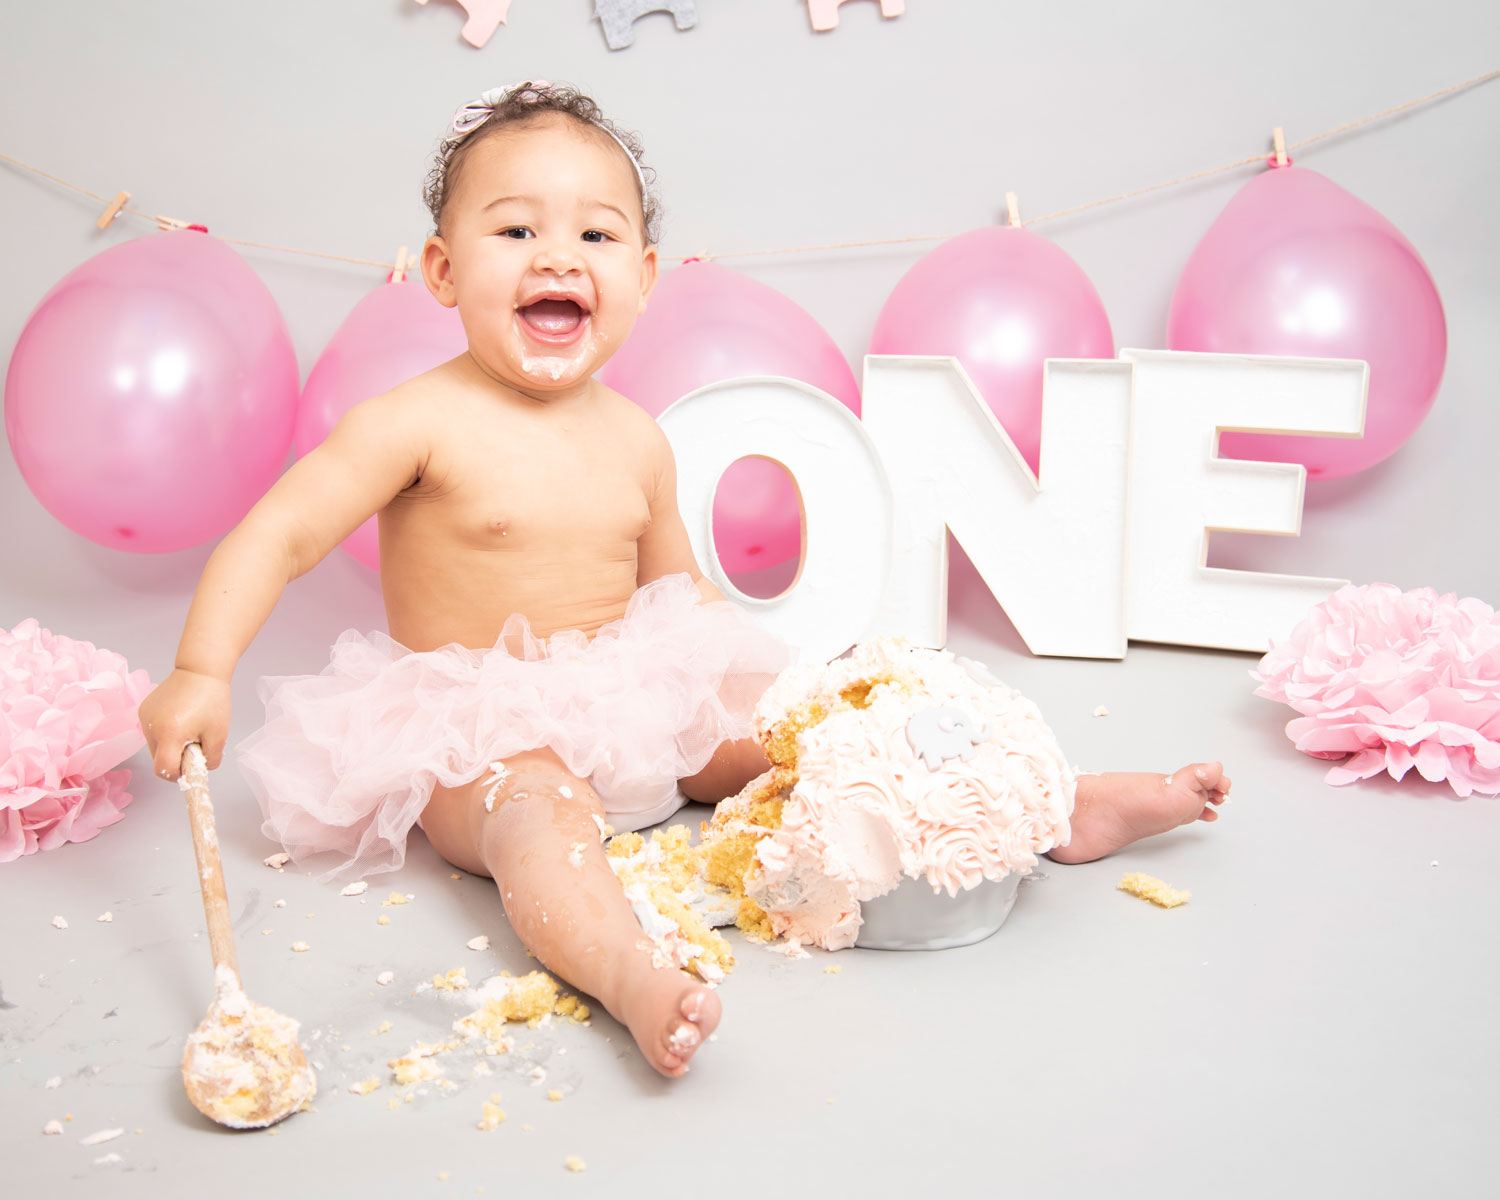 cake smash photoshoot baby photography ely studio newborn family cambridge photographer near me (297).jpg